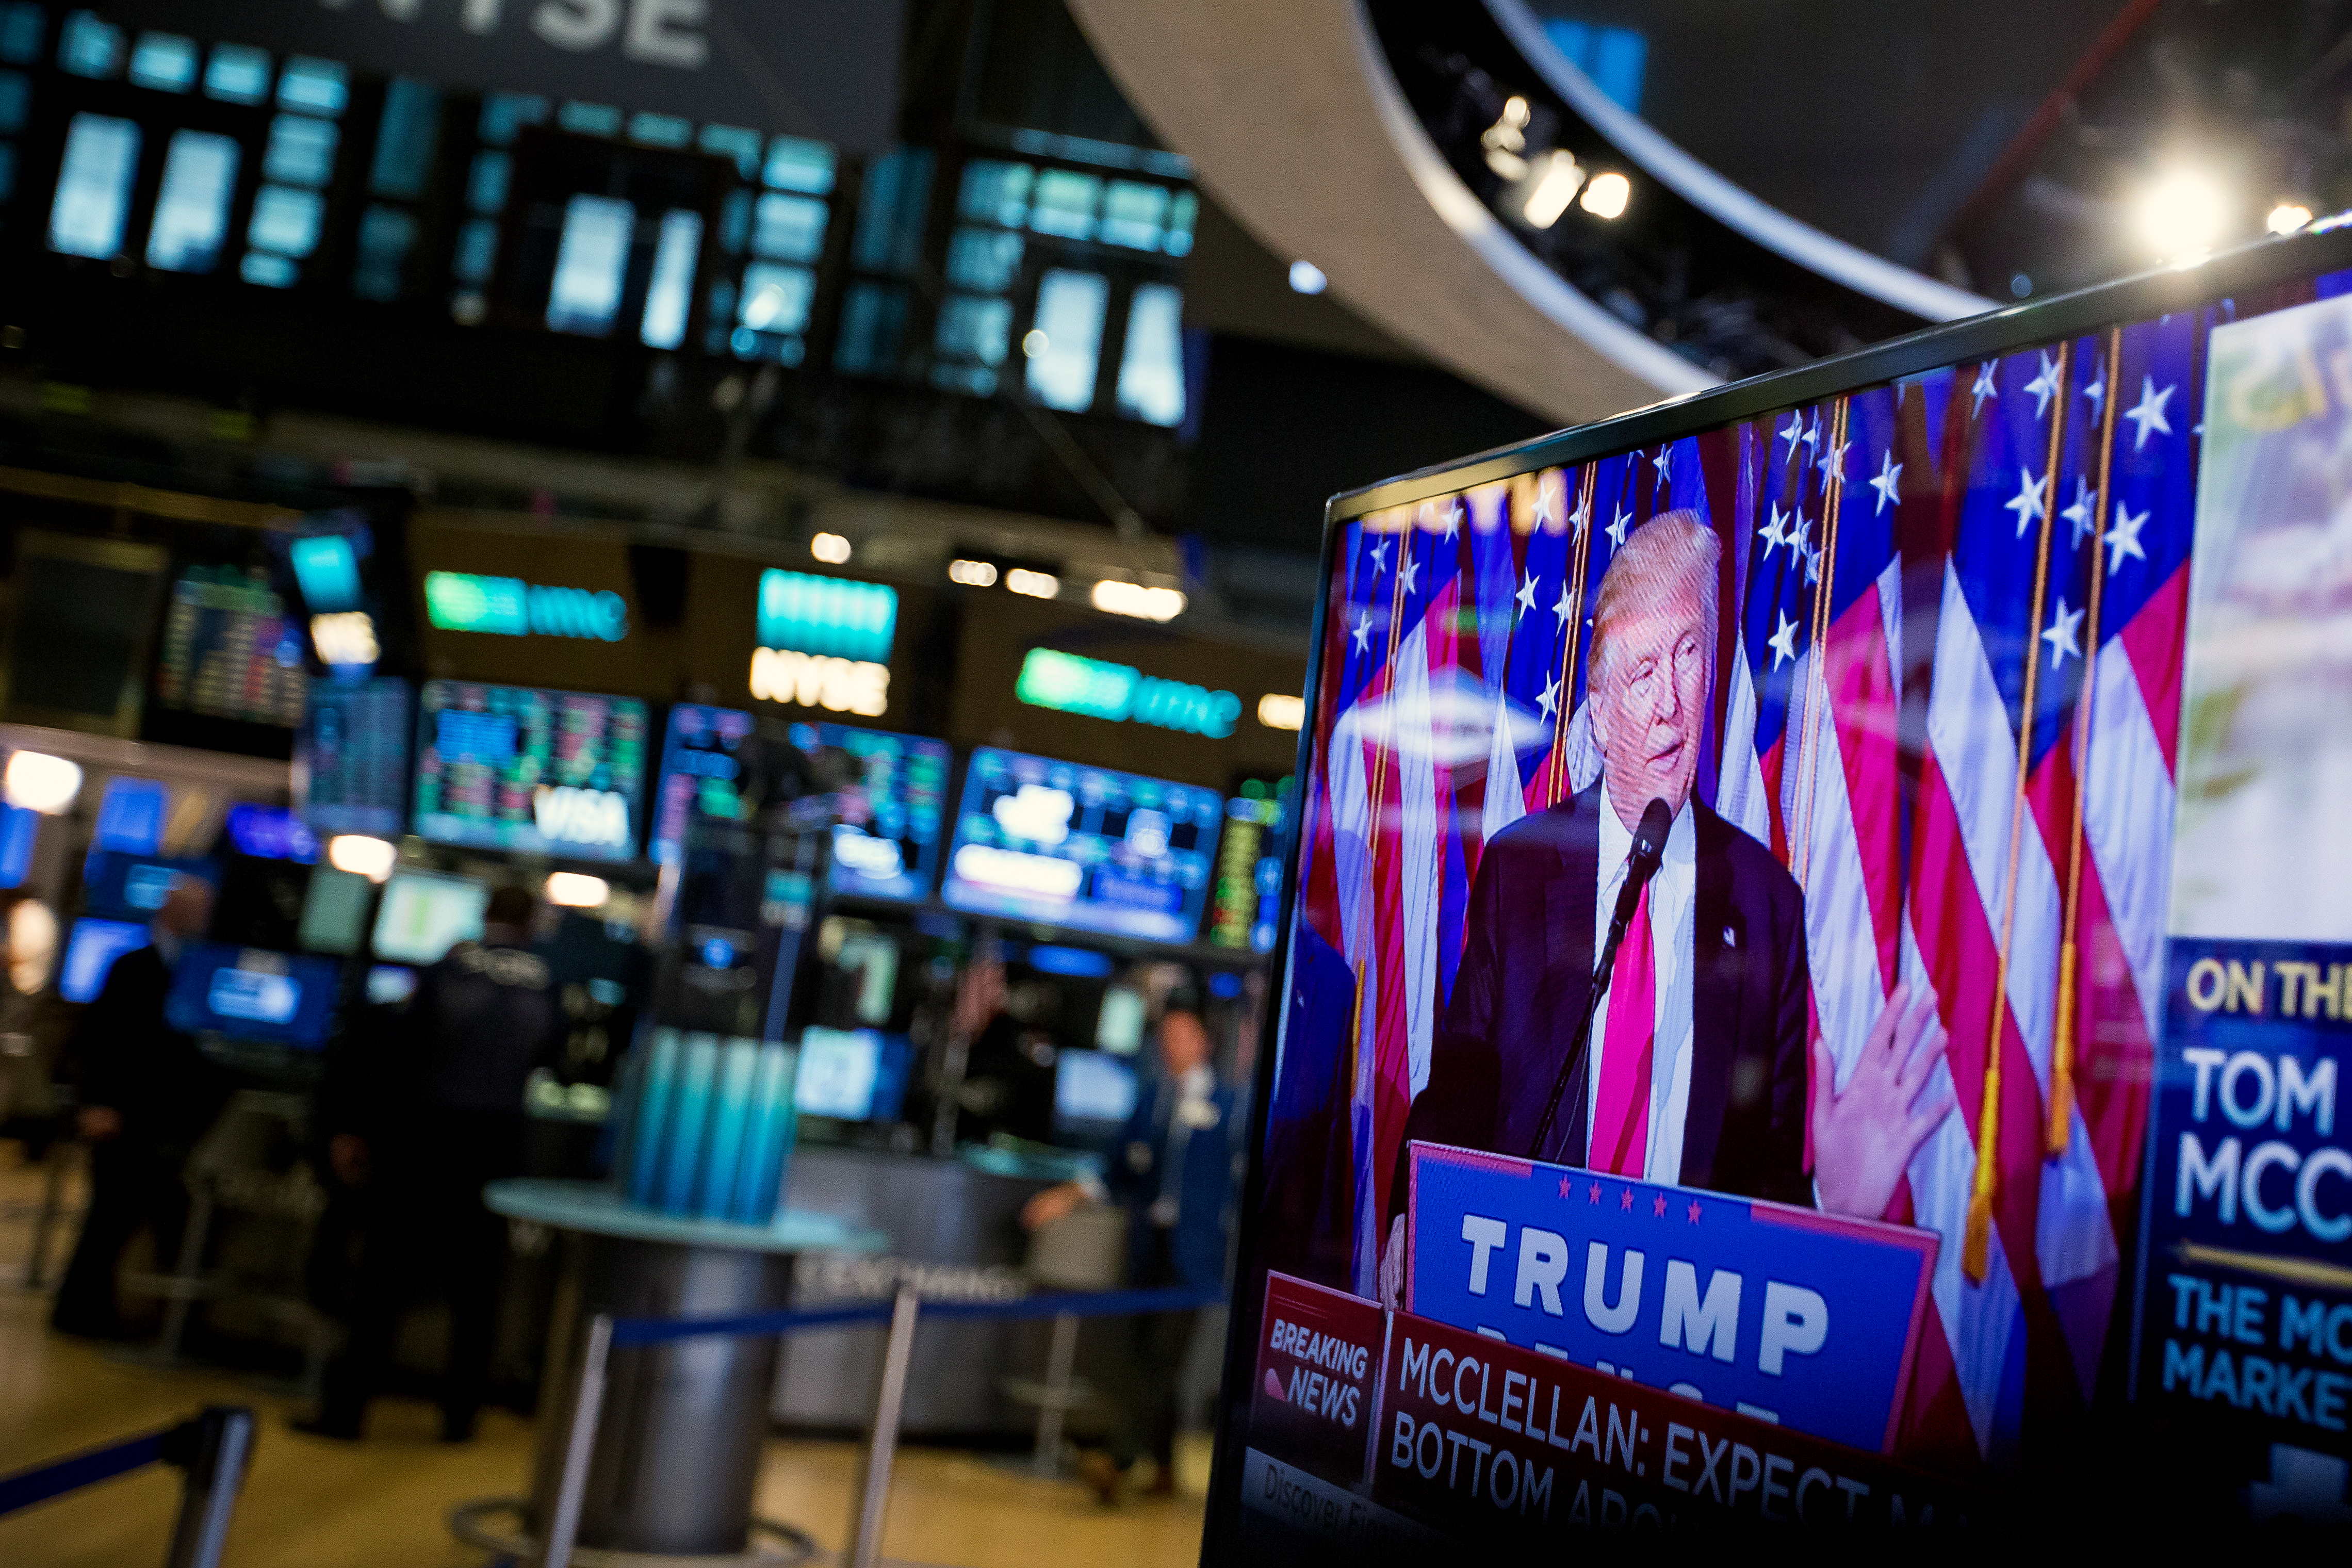 https://assets.sourcemedia.com/88/1f/f8ed9d764d27ac969f4cfc72a2dd/trump-on-tv-at-stock-exchange-bloomberg-news.jpg